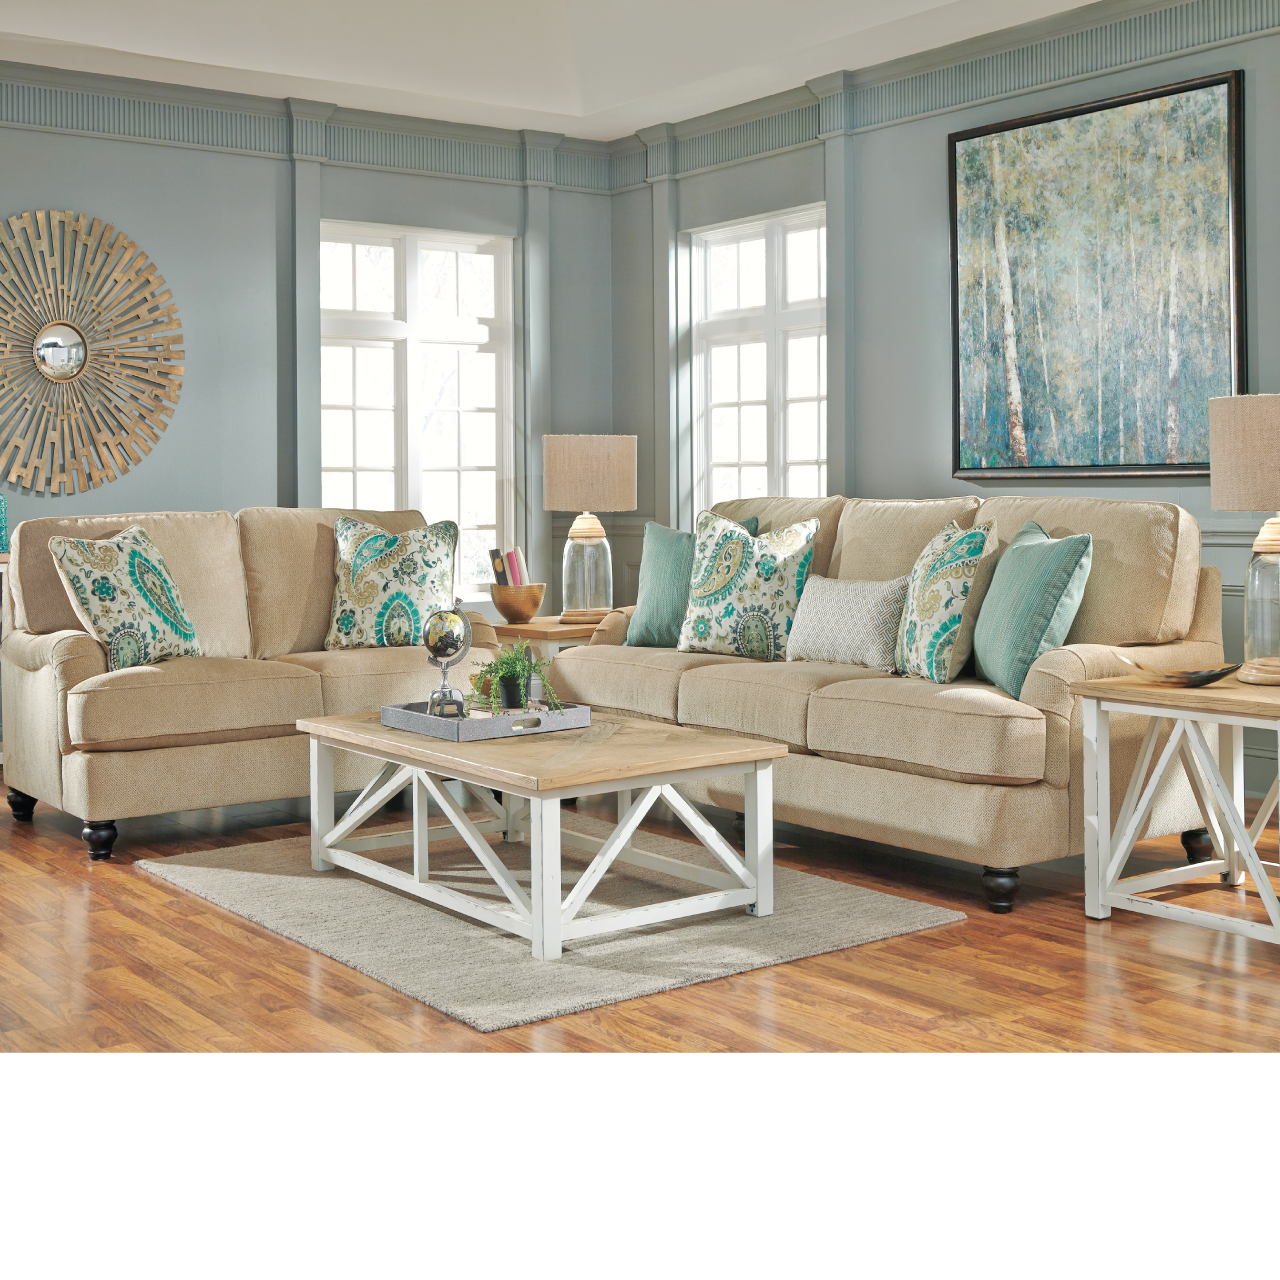 Coastal Living Room Ideas: Lochian Sofa By Ashley